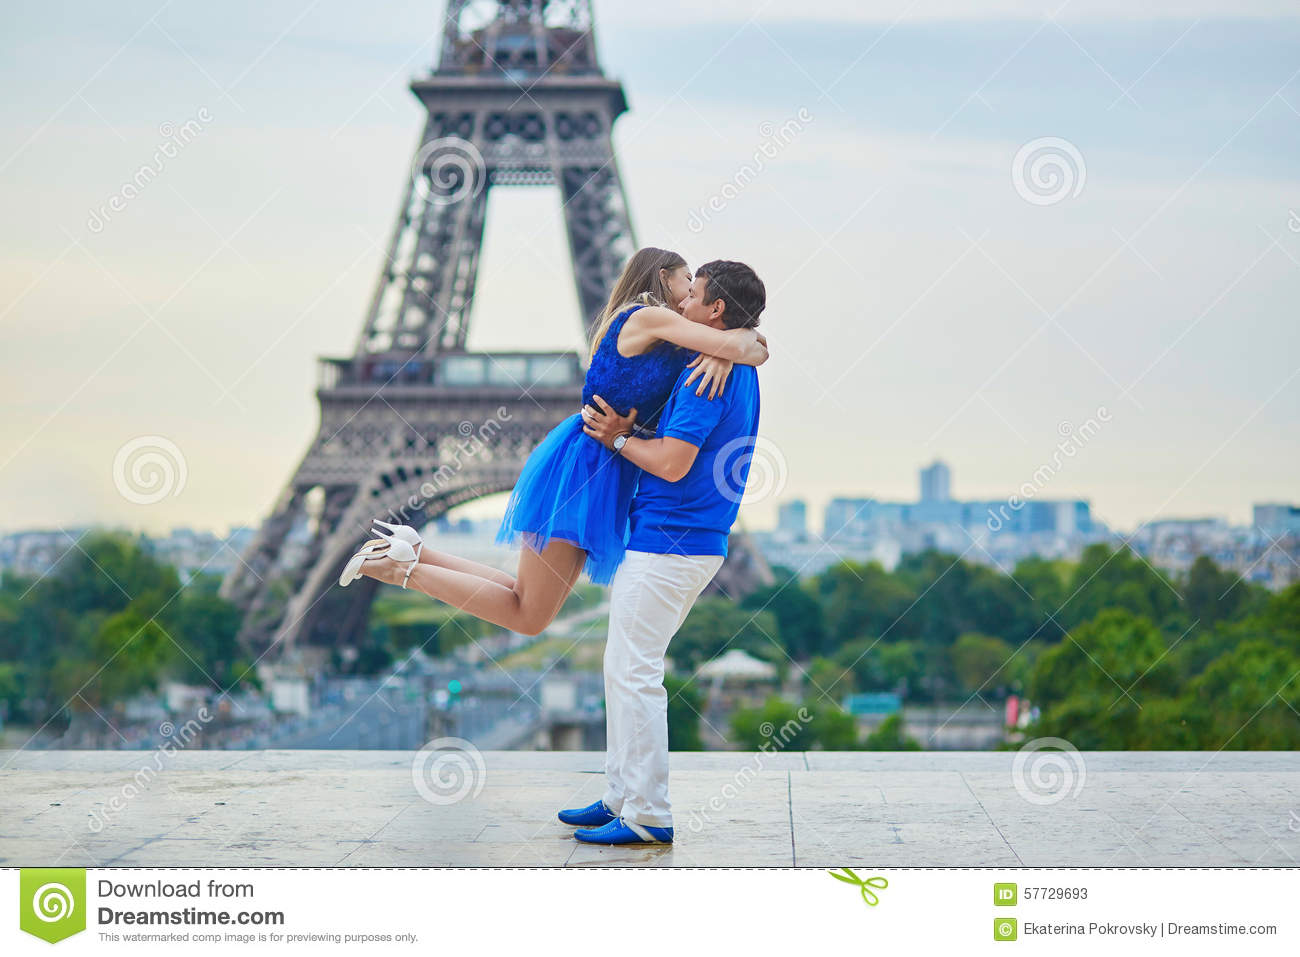 Paris dating dating your housemate